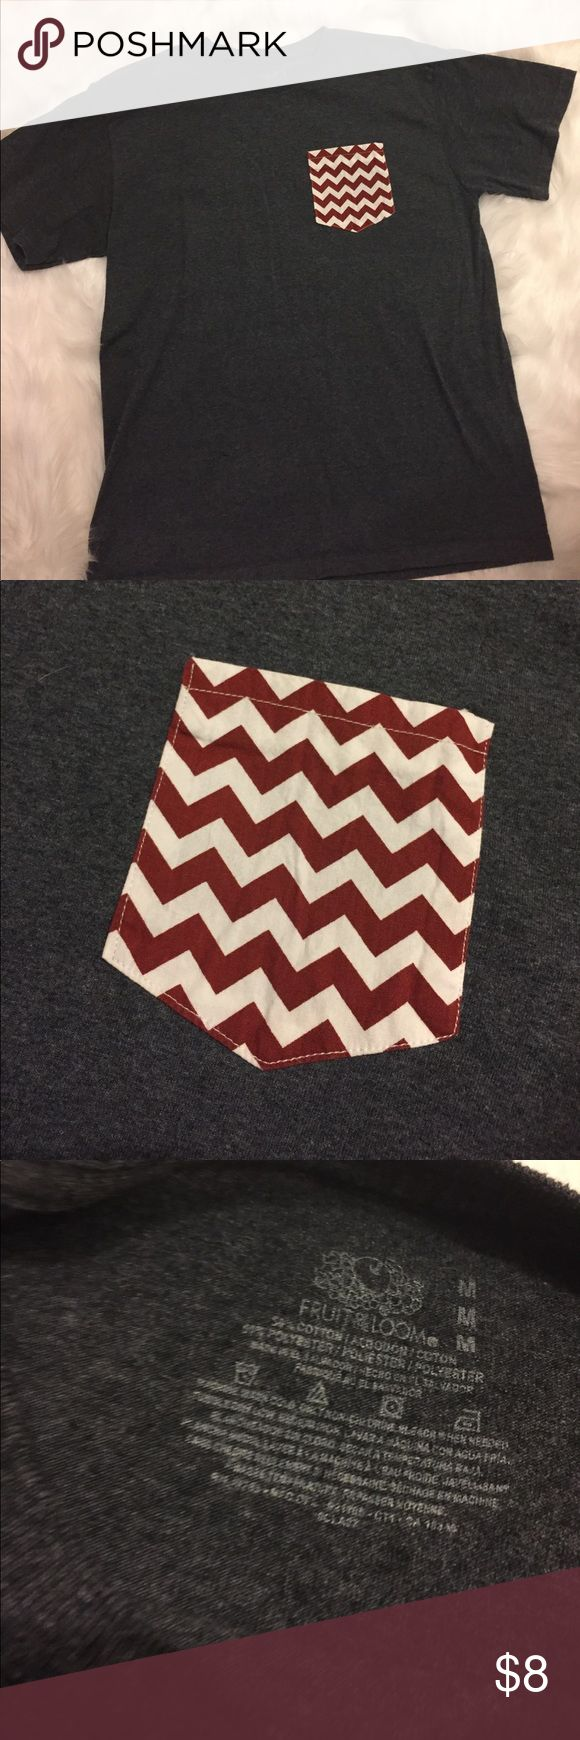 "Cute Pocket Tee Charcoal gray with chevron print pocket! Worn a couple of times! Size medium...length 27"". Across bust 21"" Tops Tees - Short Sleeve"